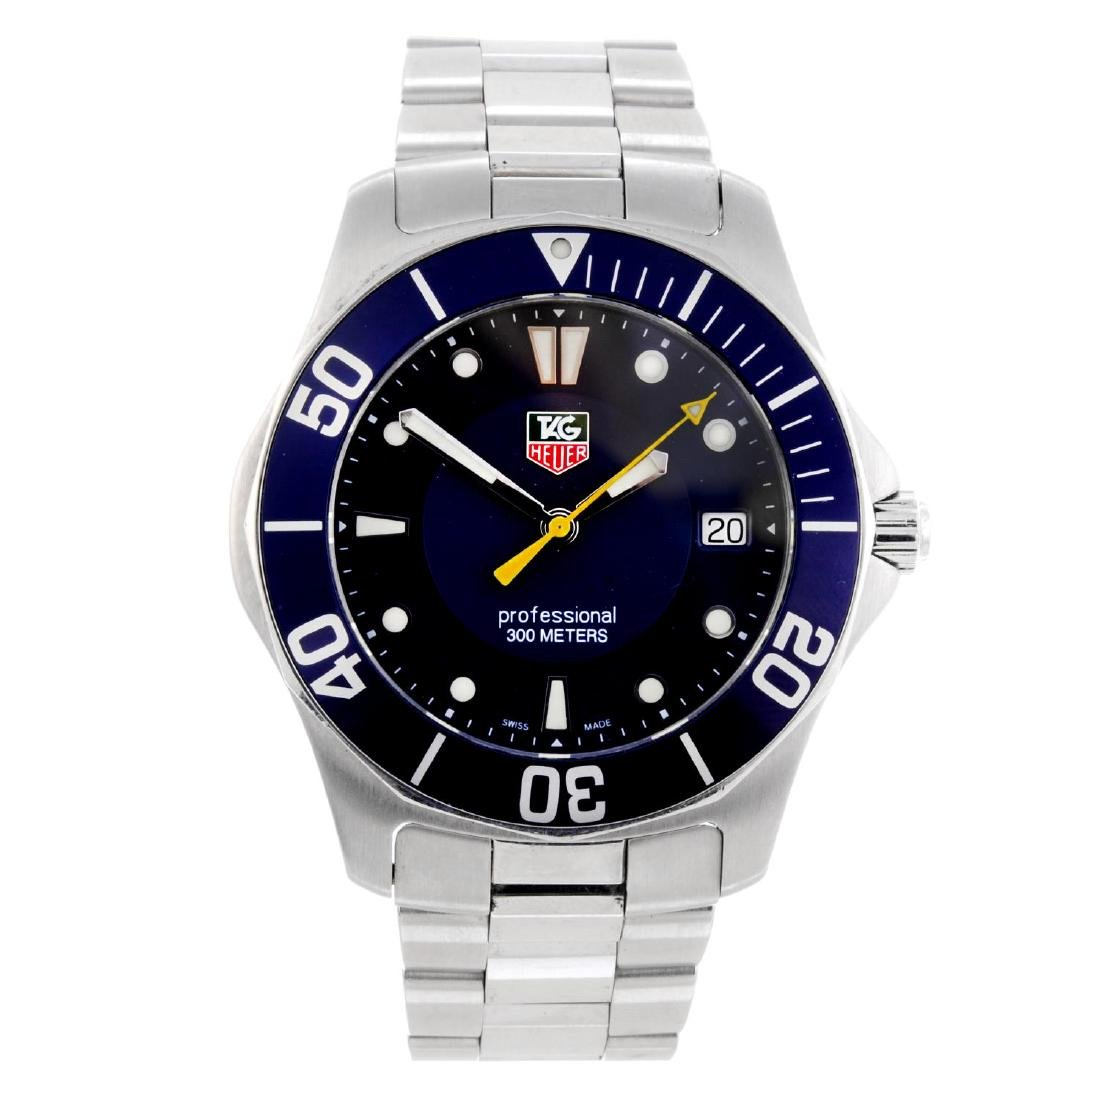 TAG HEUER - a gentleman's Aquaracer bracelet watch.